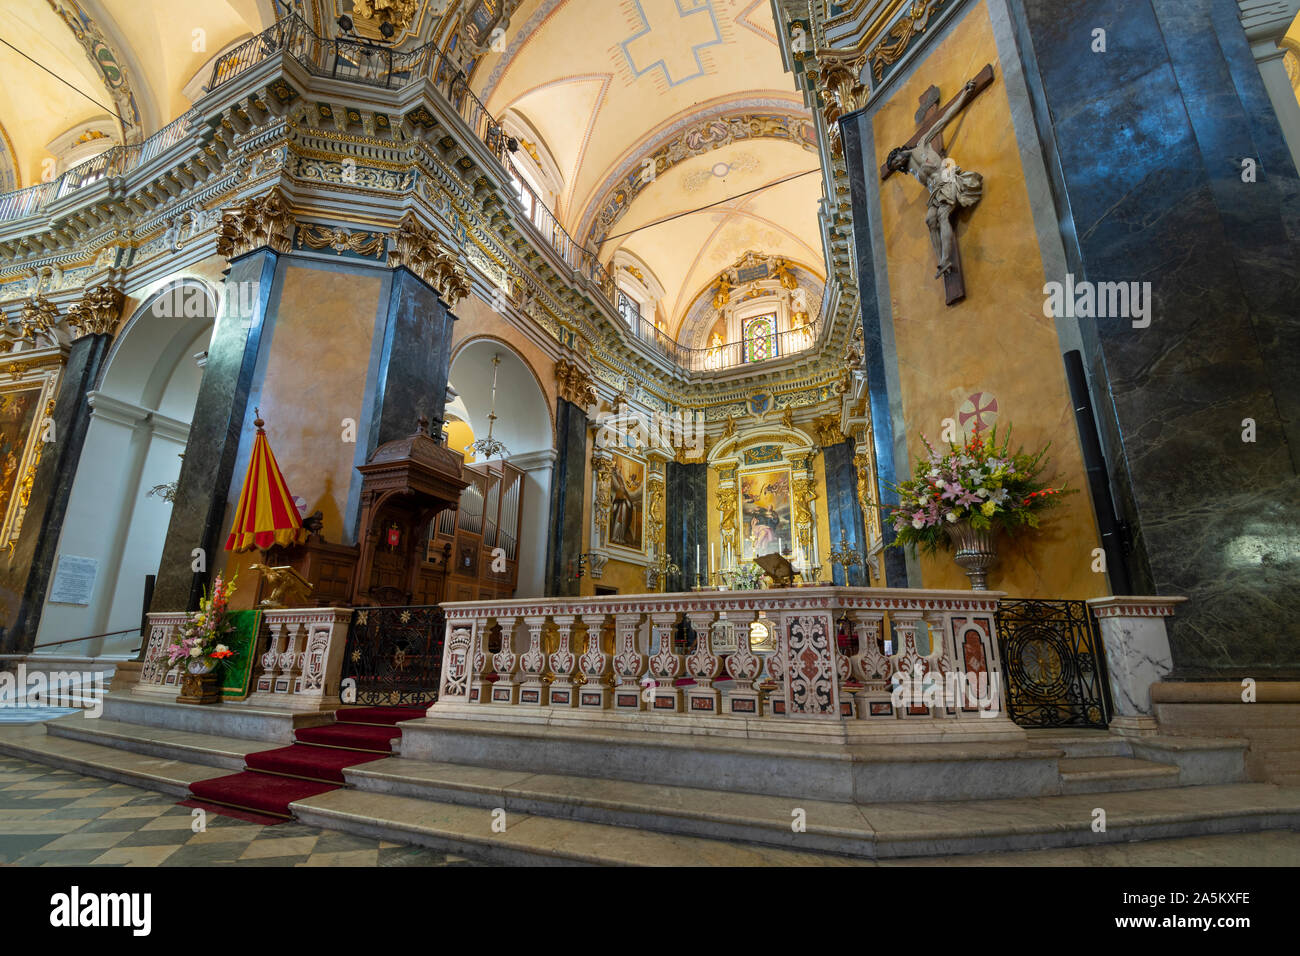 One of the 10 chapels in the Baroque Nice Cathedral, also known as Cathedral Sainte-Reparate de Nice. Stock Photo